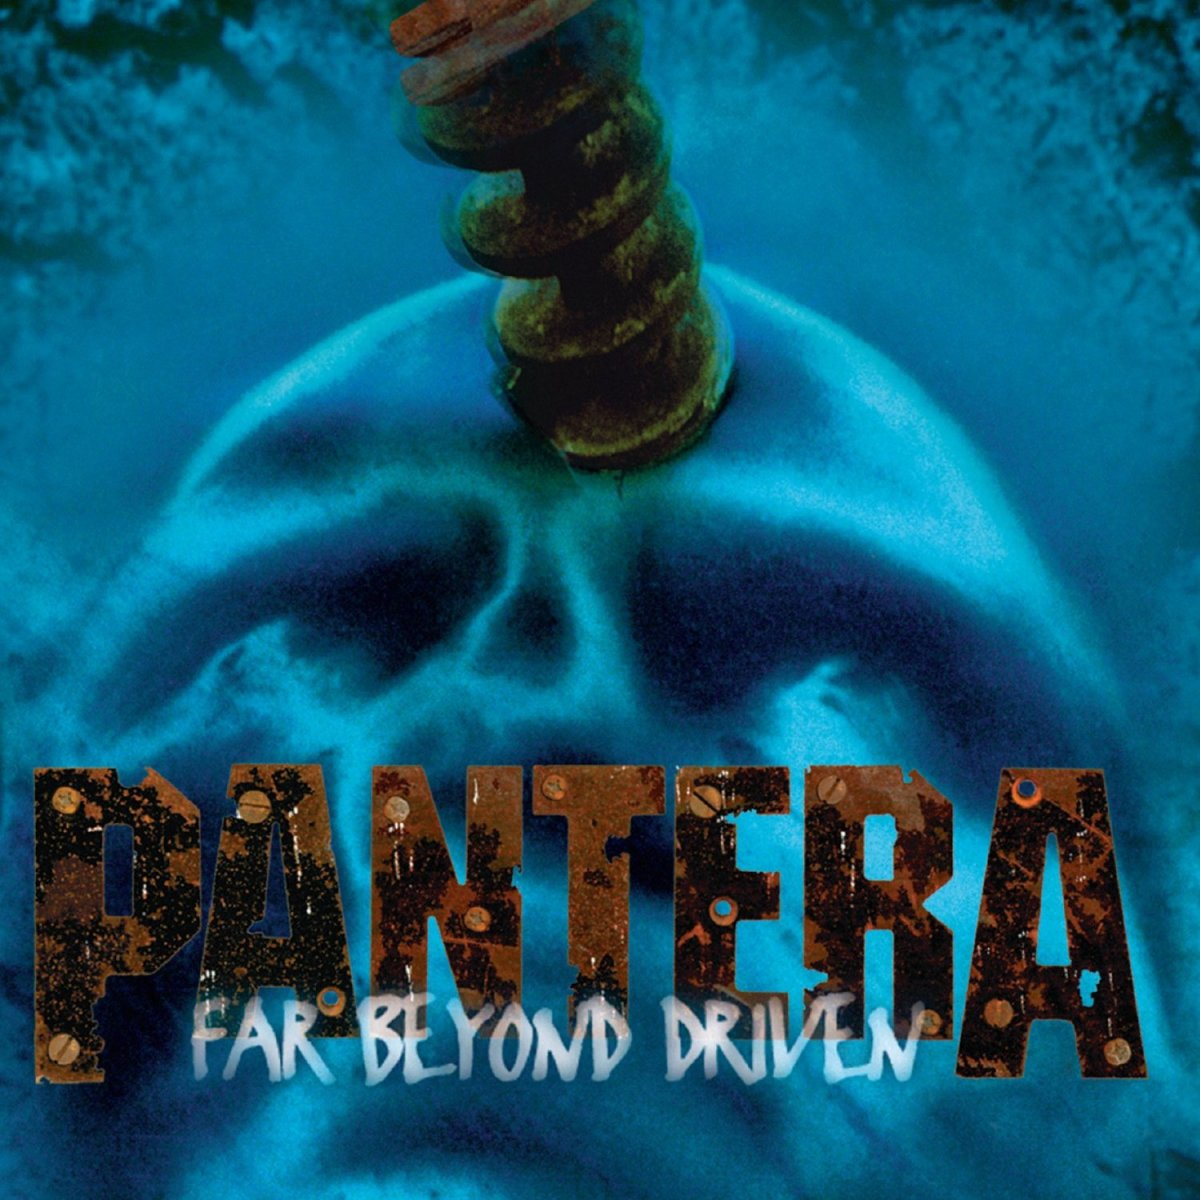 Pantera Far Beyond Driven:The Album That Represents the Decline of Pantera